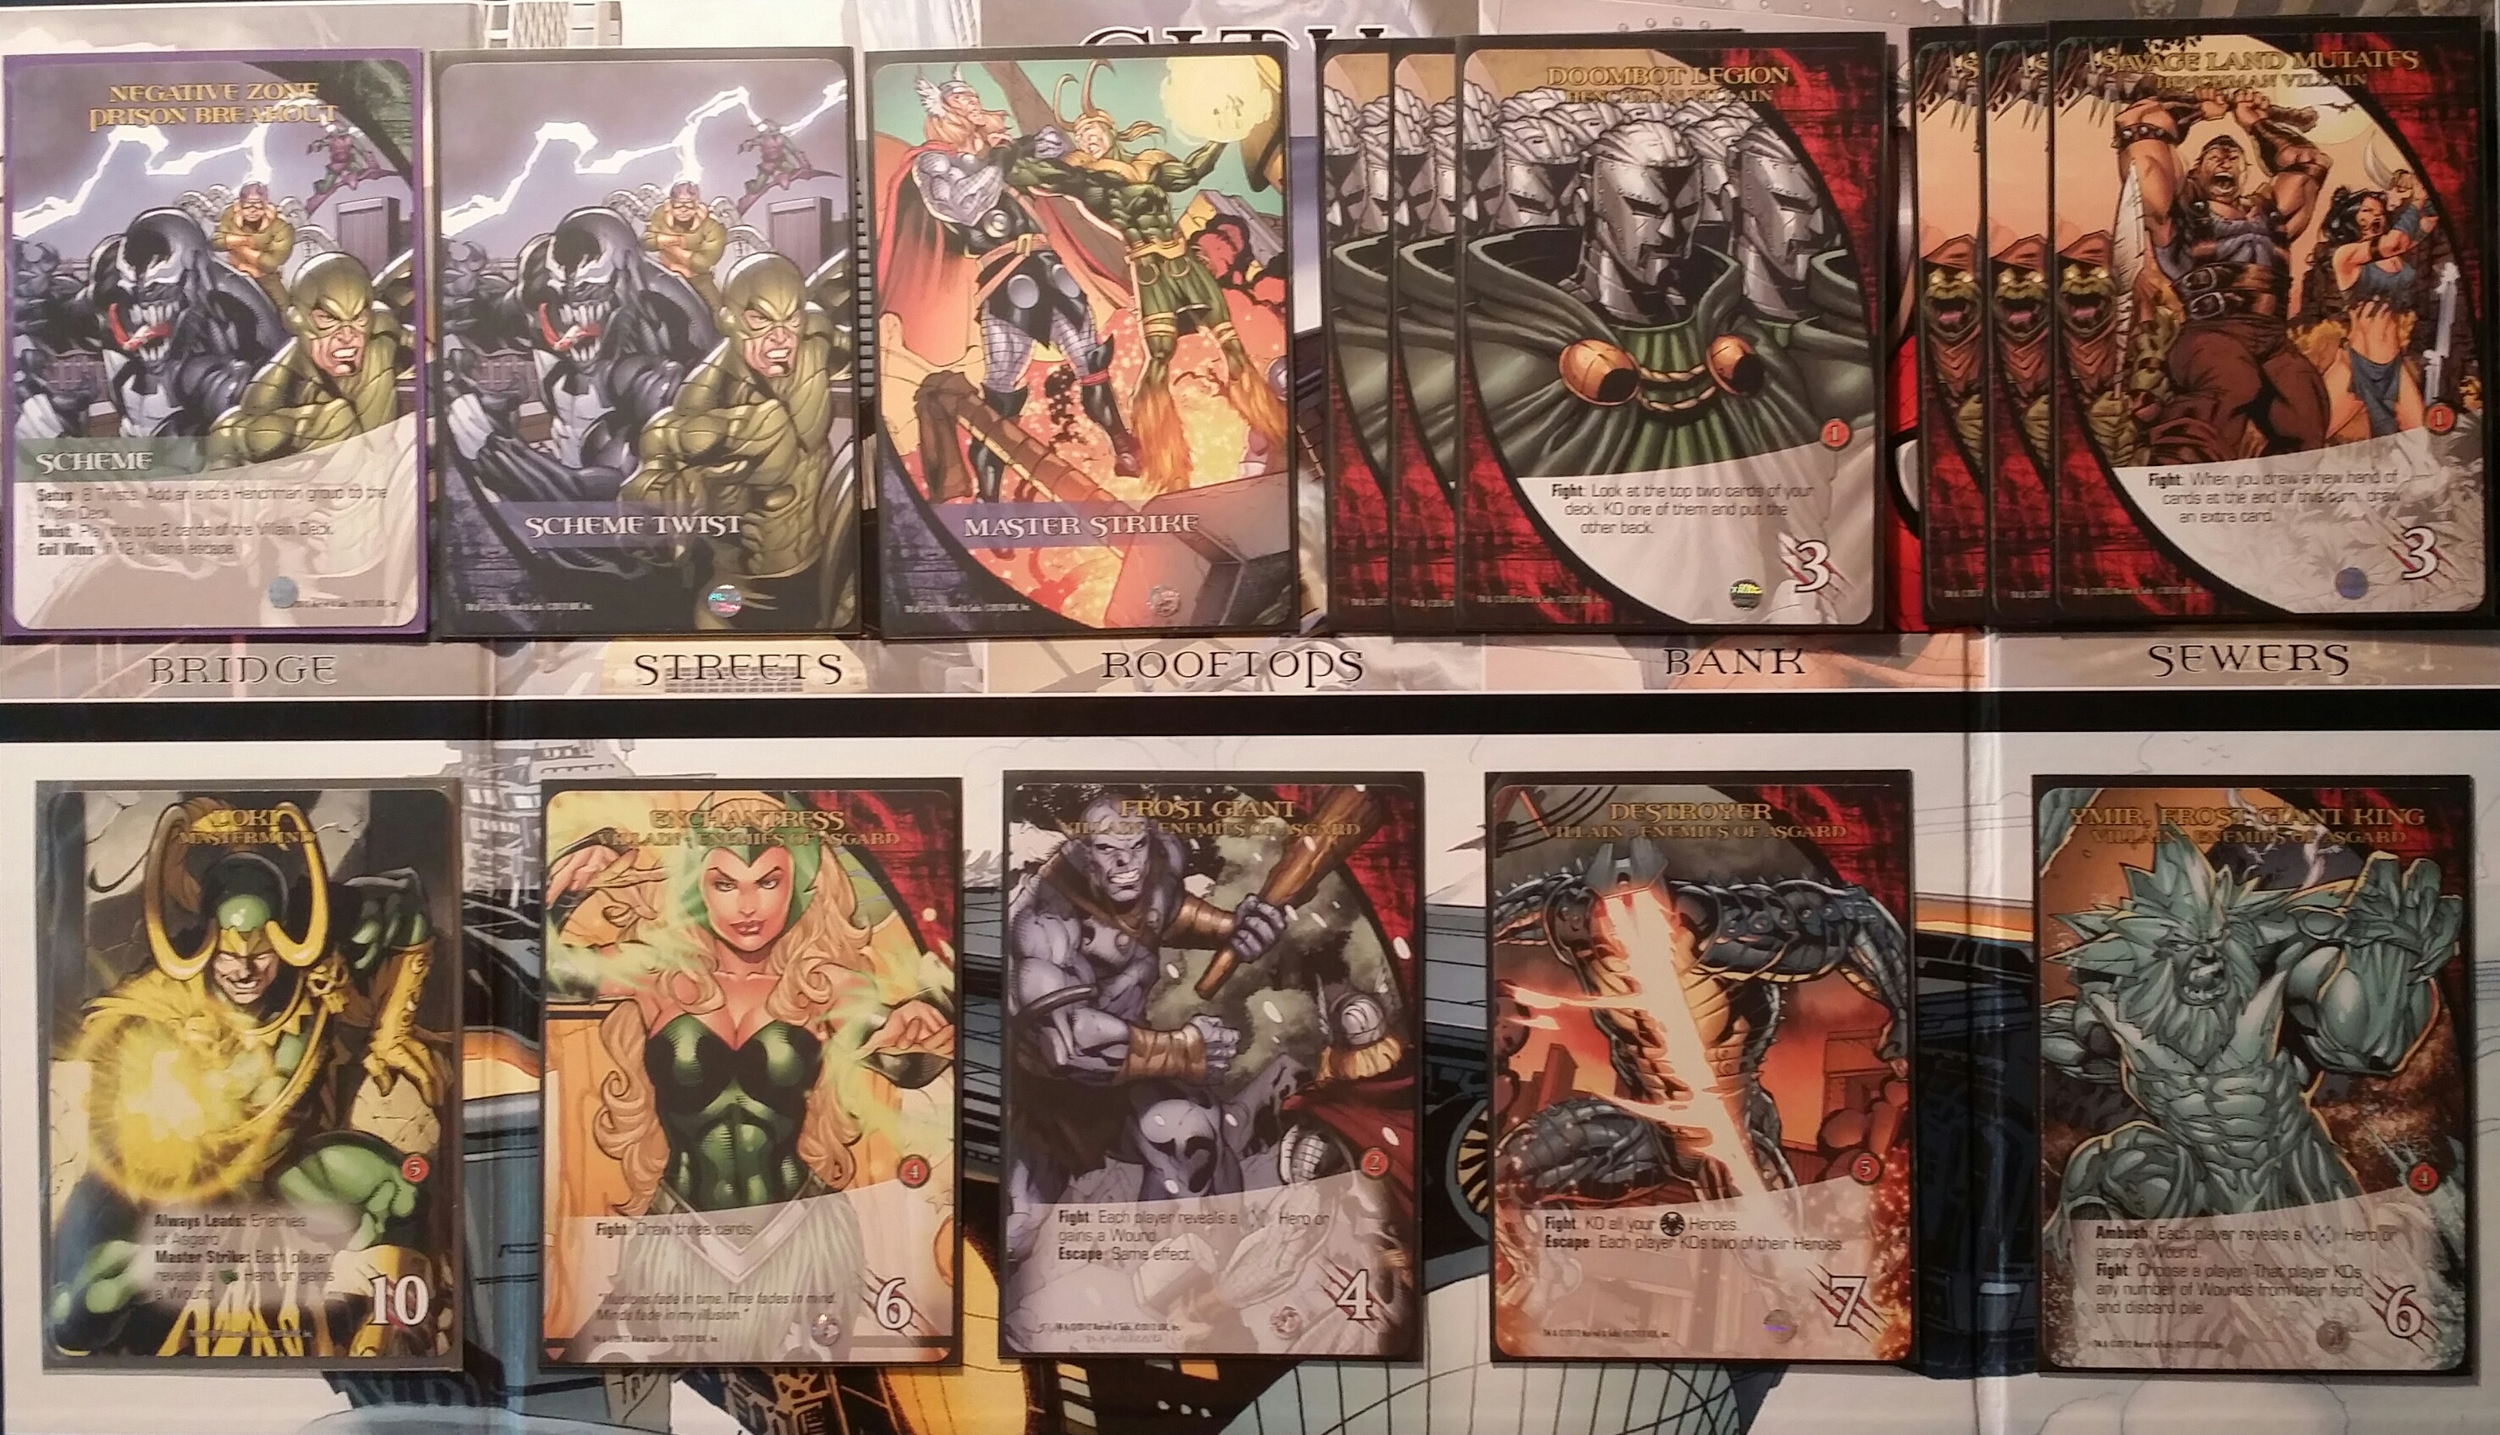 In this example with 4 players, the Mastermind Loki, and the Negative Zone Prison Breakout Scheme the breakdown is: 3 Villain Groups (1 having to be the Enemies of Asgard Villain Group as dictated by Loki and 2 others of choice)/2 Henchmen Groups (Doombot Legion and Savage Land Mutants)/8 Bystanders/8 Scheme Twists (dictated by the chosen Scheme)/5 Master Strike cards are all shuffled together to form the Villain Deck.  The Heroes Wolverine/Hulk/Iron Man/Storm/Spider-Man are all shuffled together to form the Hero Deck.